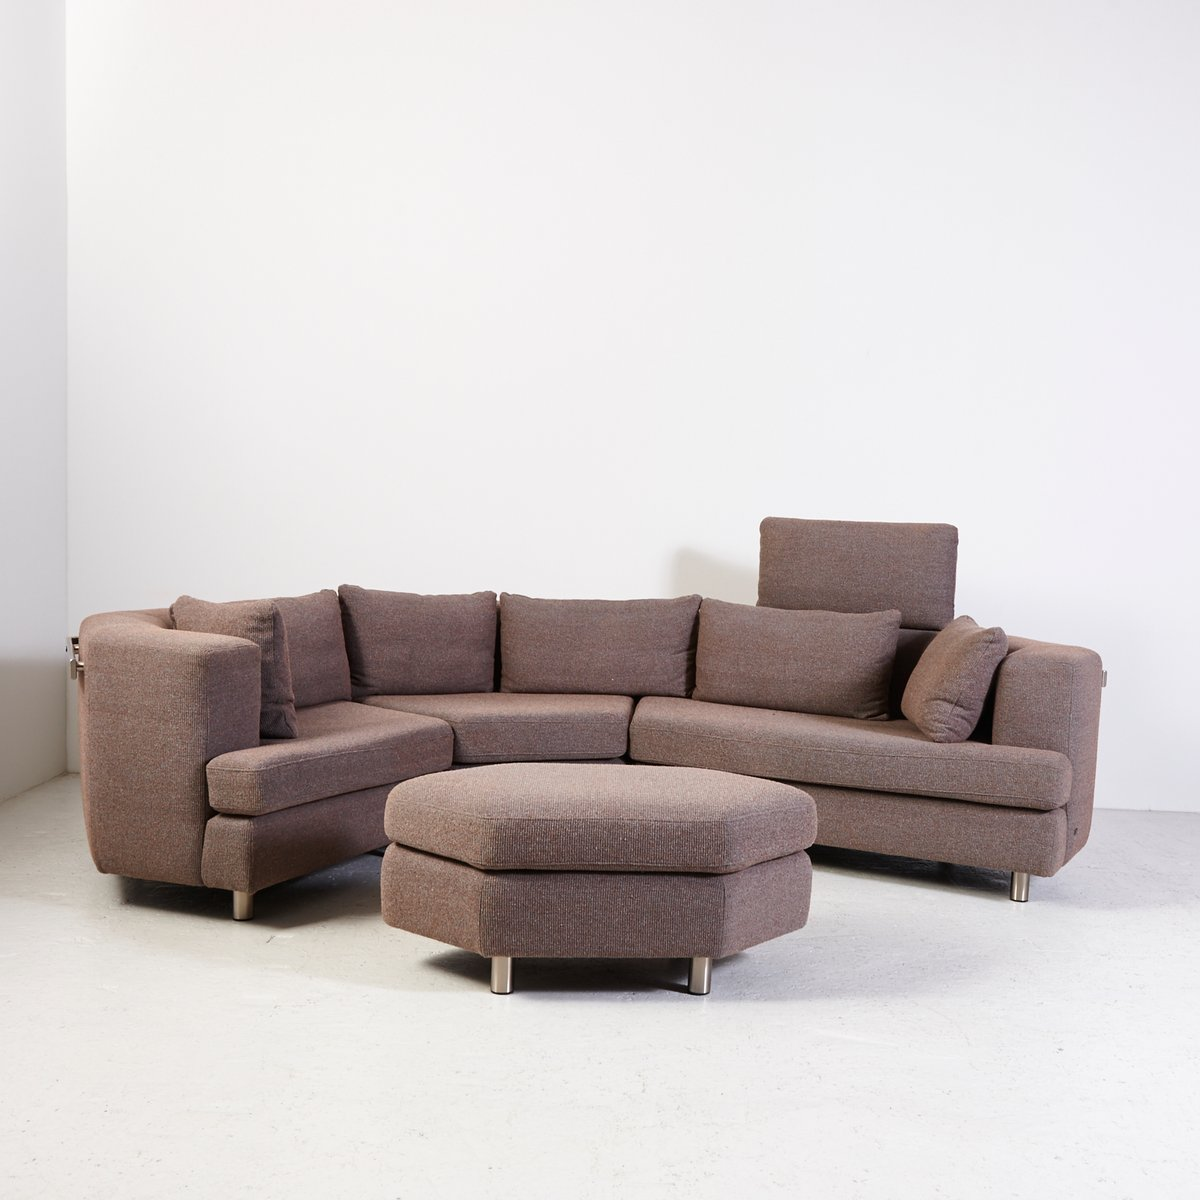 Model 200 Leather Modular Sofa From Rolf Benz, 1970s For